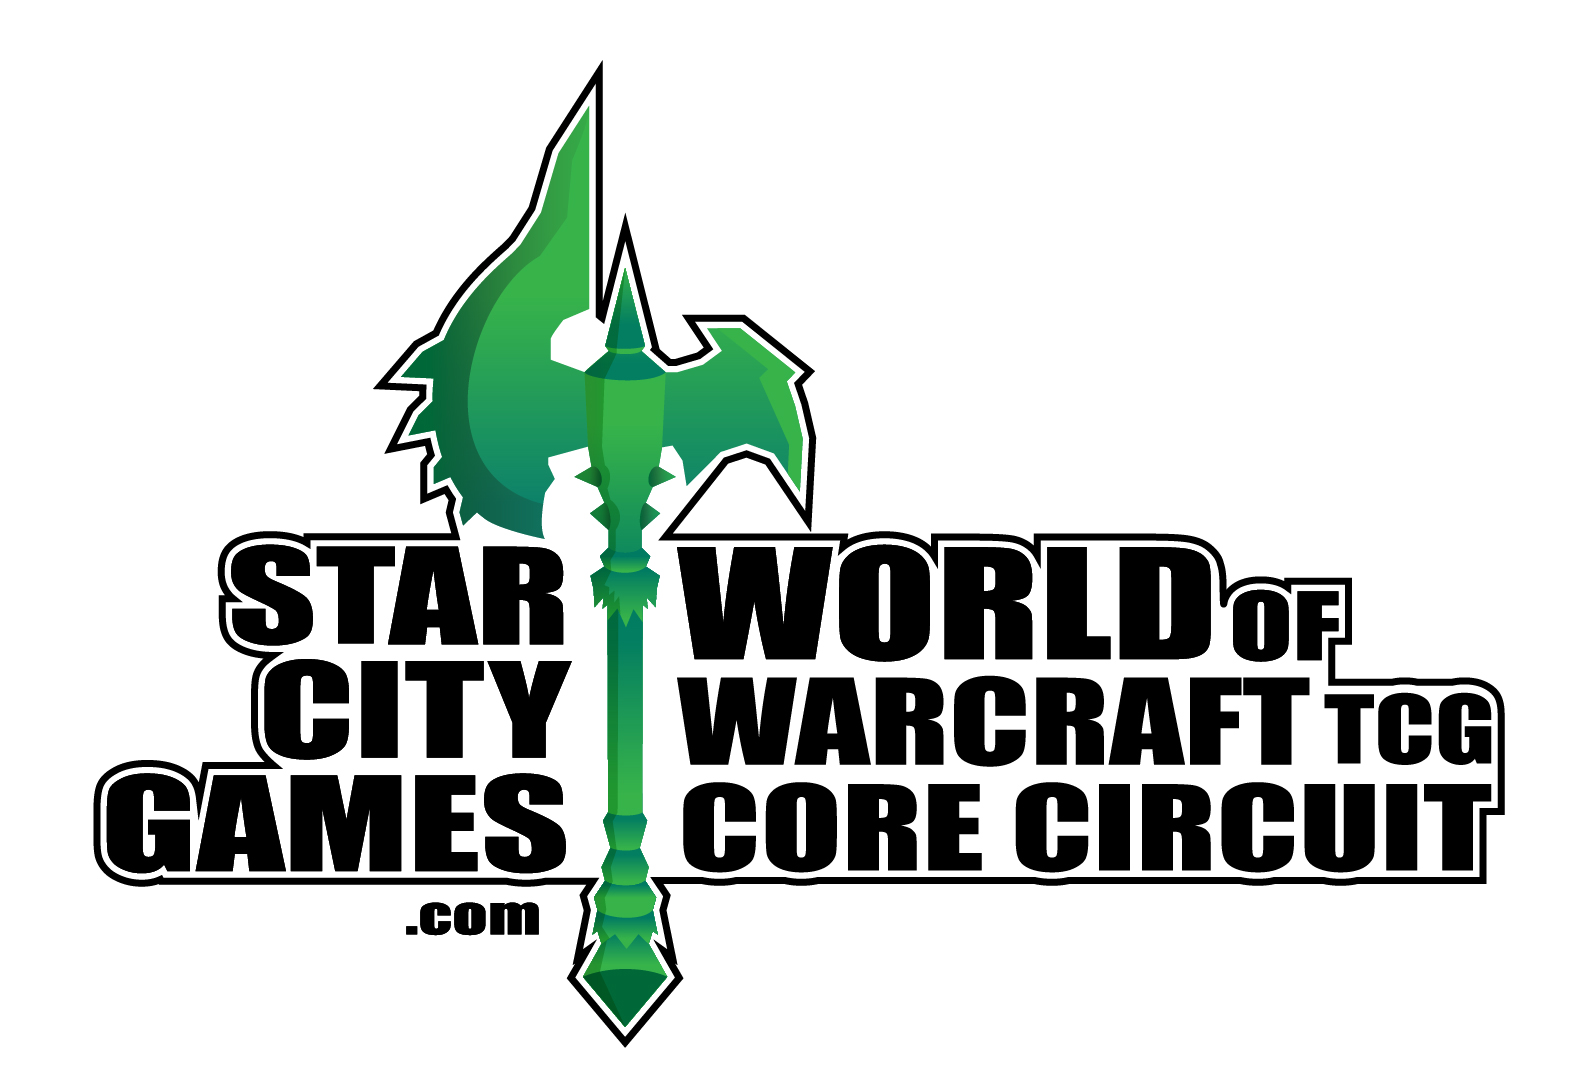 World of Warcraft TCG Core Circuit